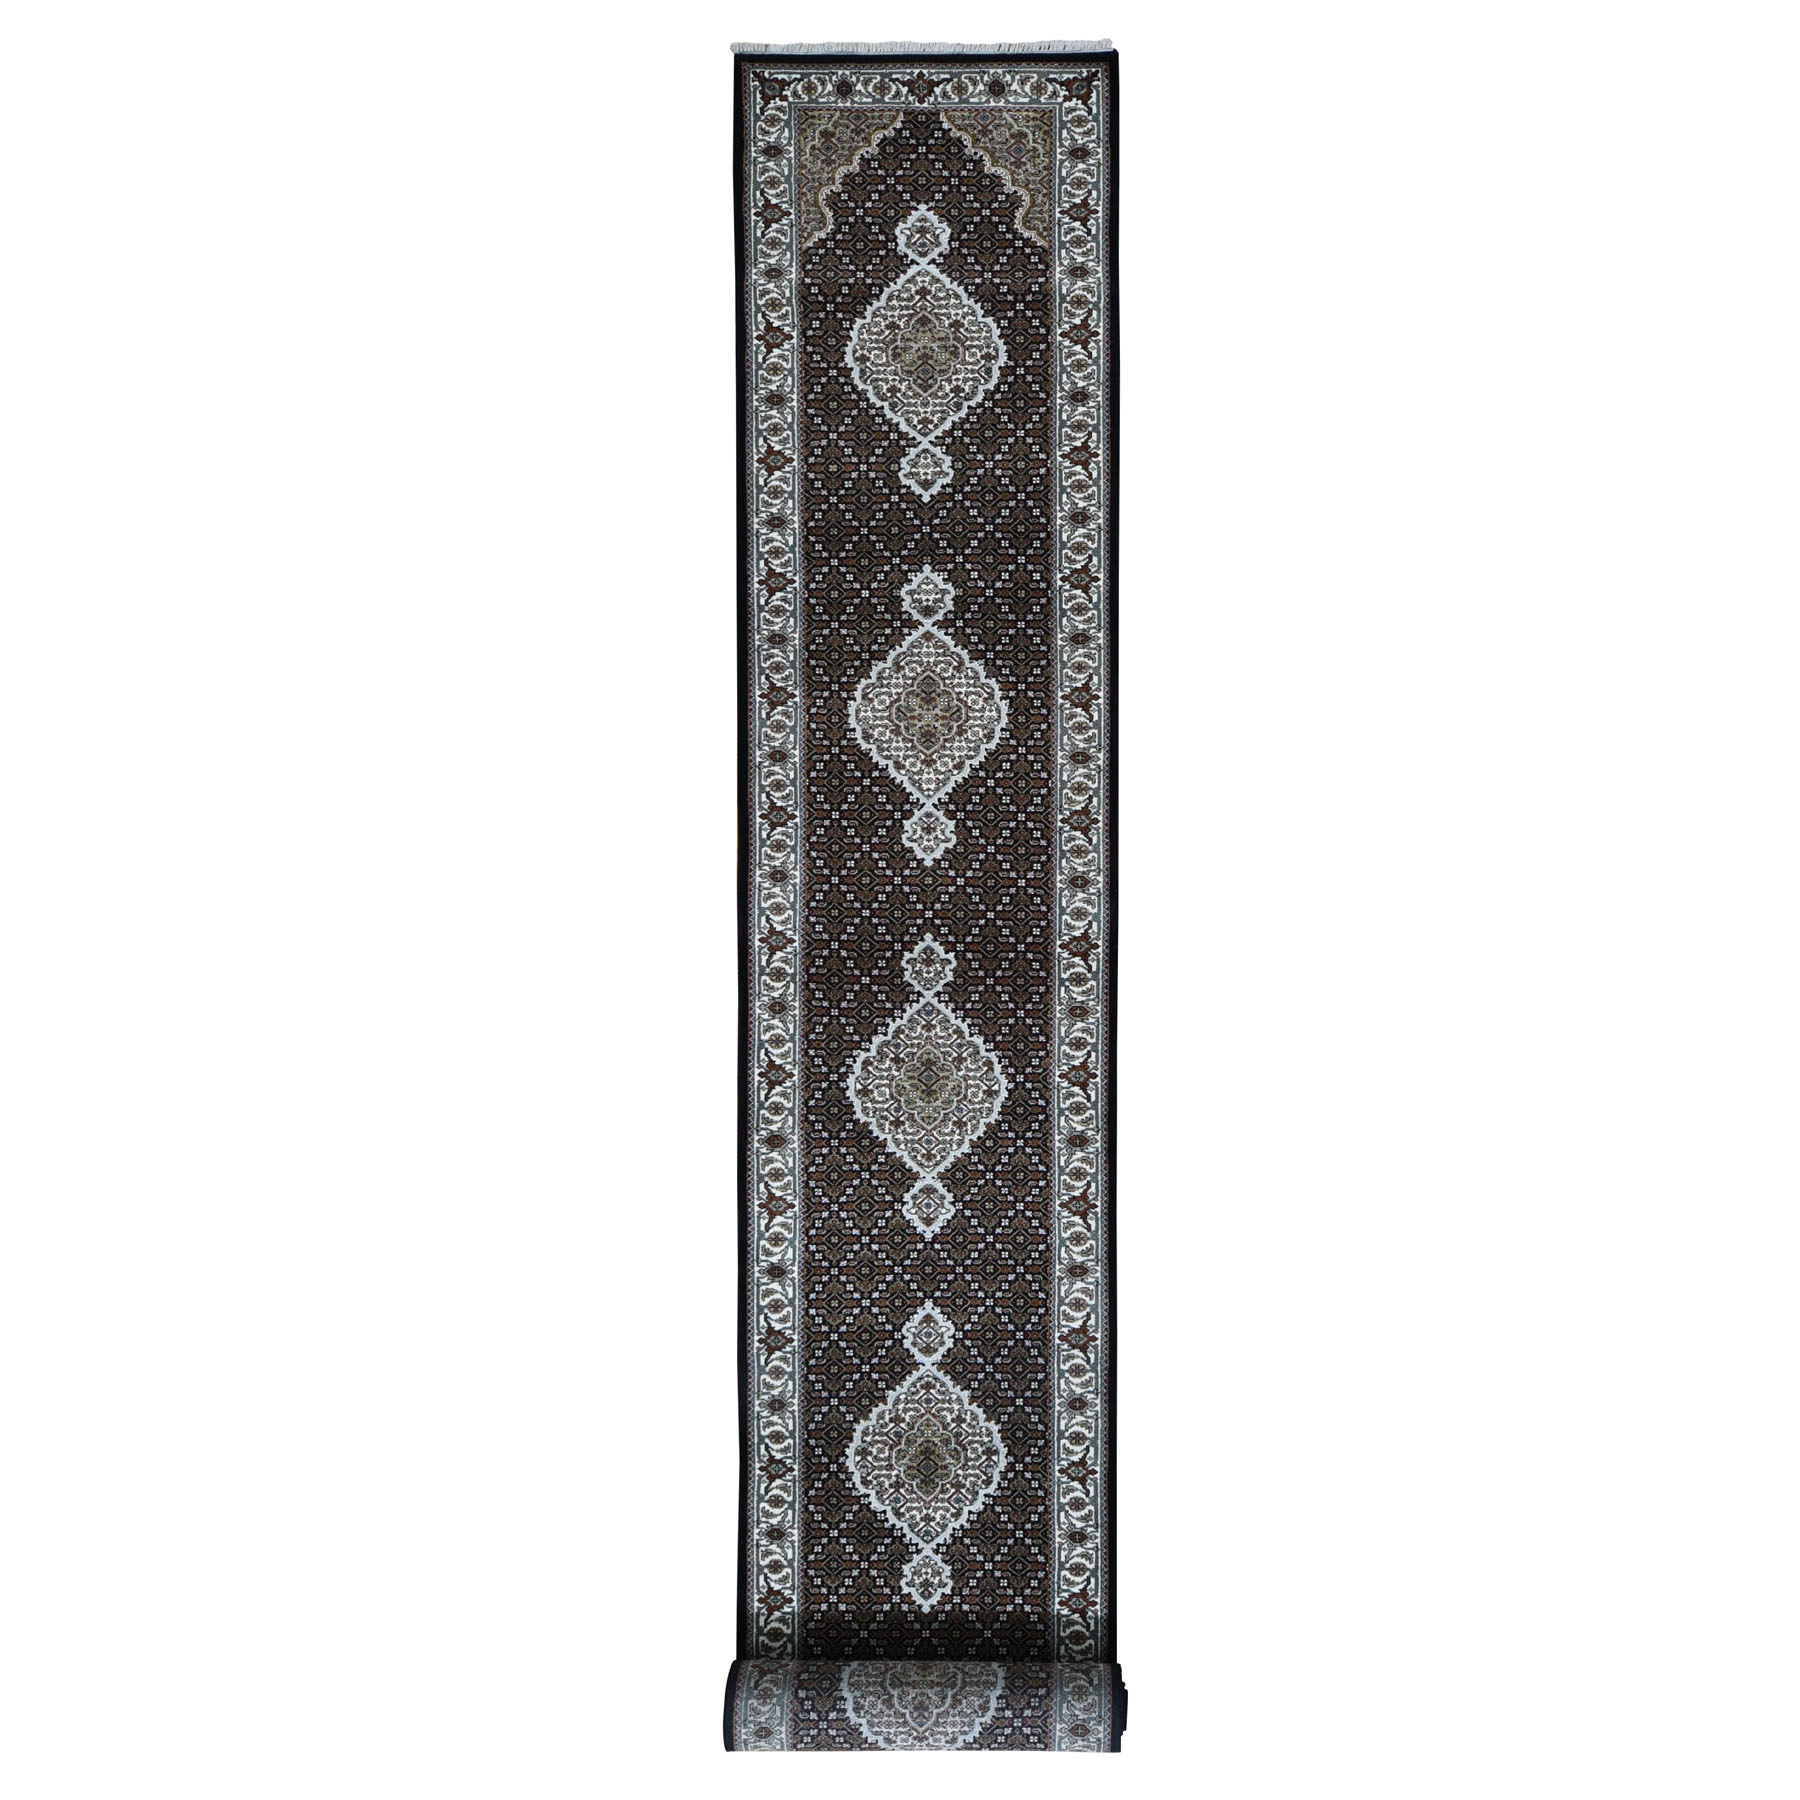 Pirniakan Collection Hand Knotted Black Rug No: 0196192